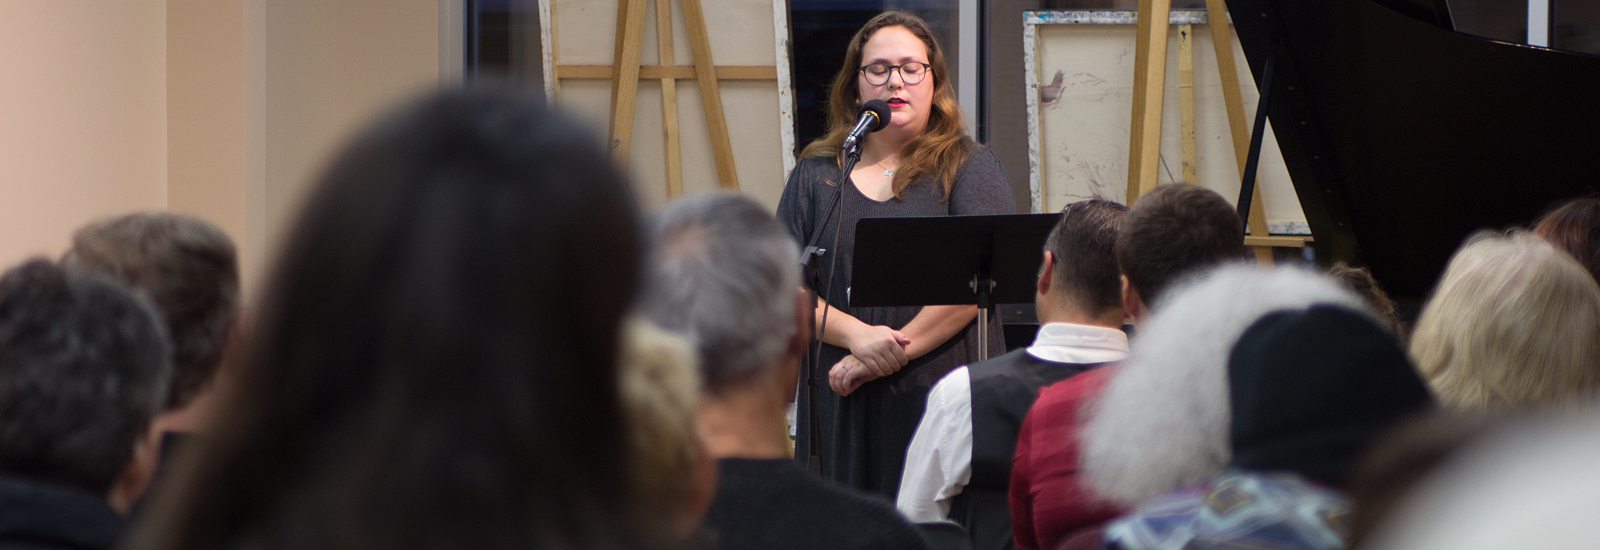 Liz O'Donnell joined professional poet Marc Hudson as the student reader at last month's event <span class='image-credits'>Diana Prichard</span>